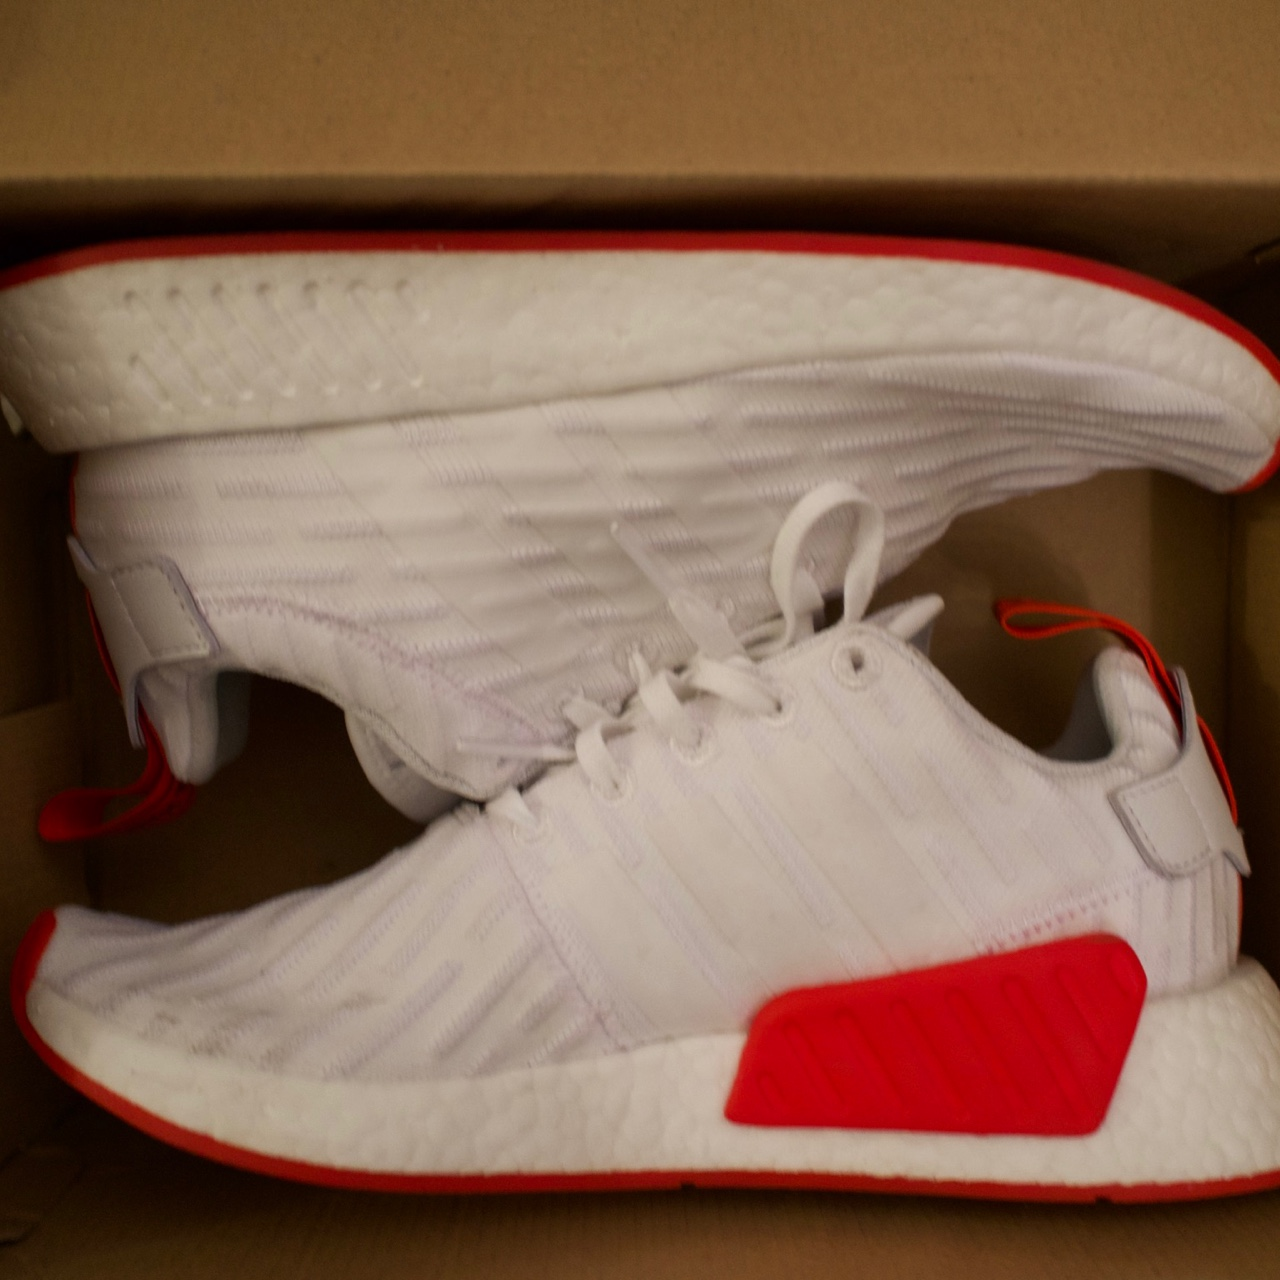 Adidas Nmd R2 Pk White And Red Only Worn Once Depop